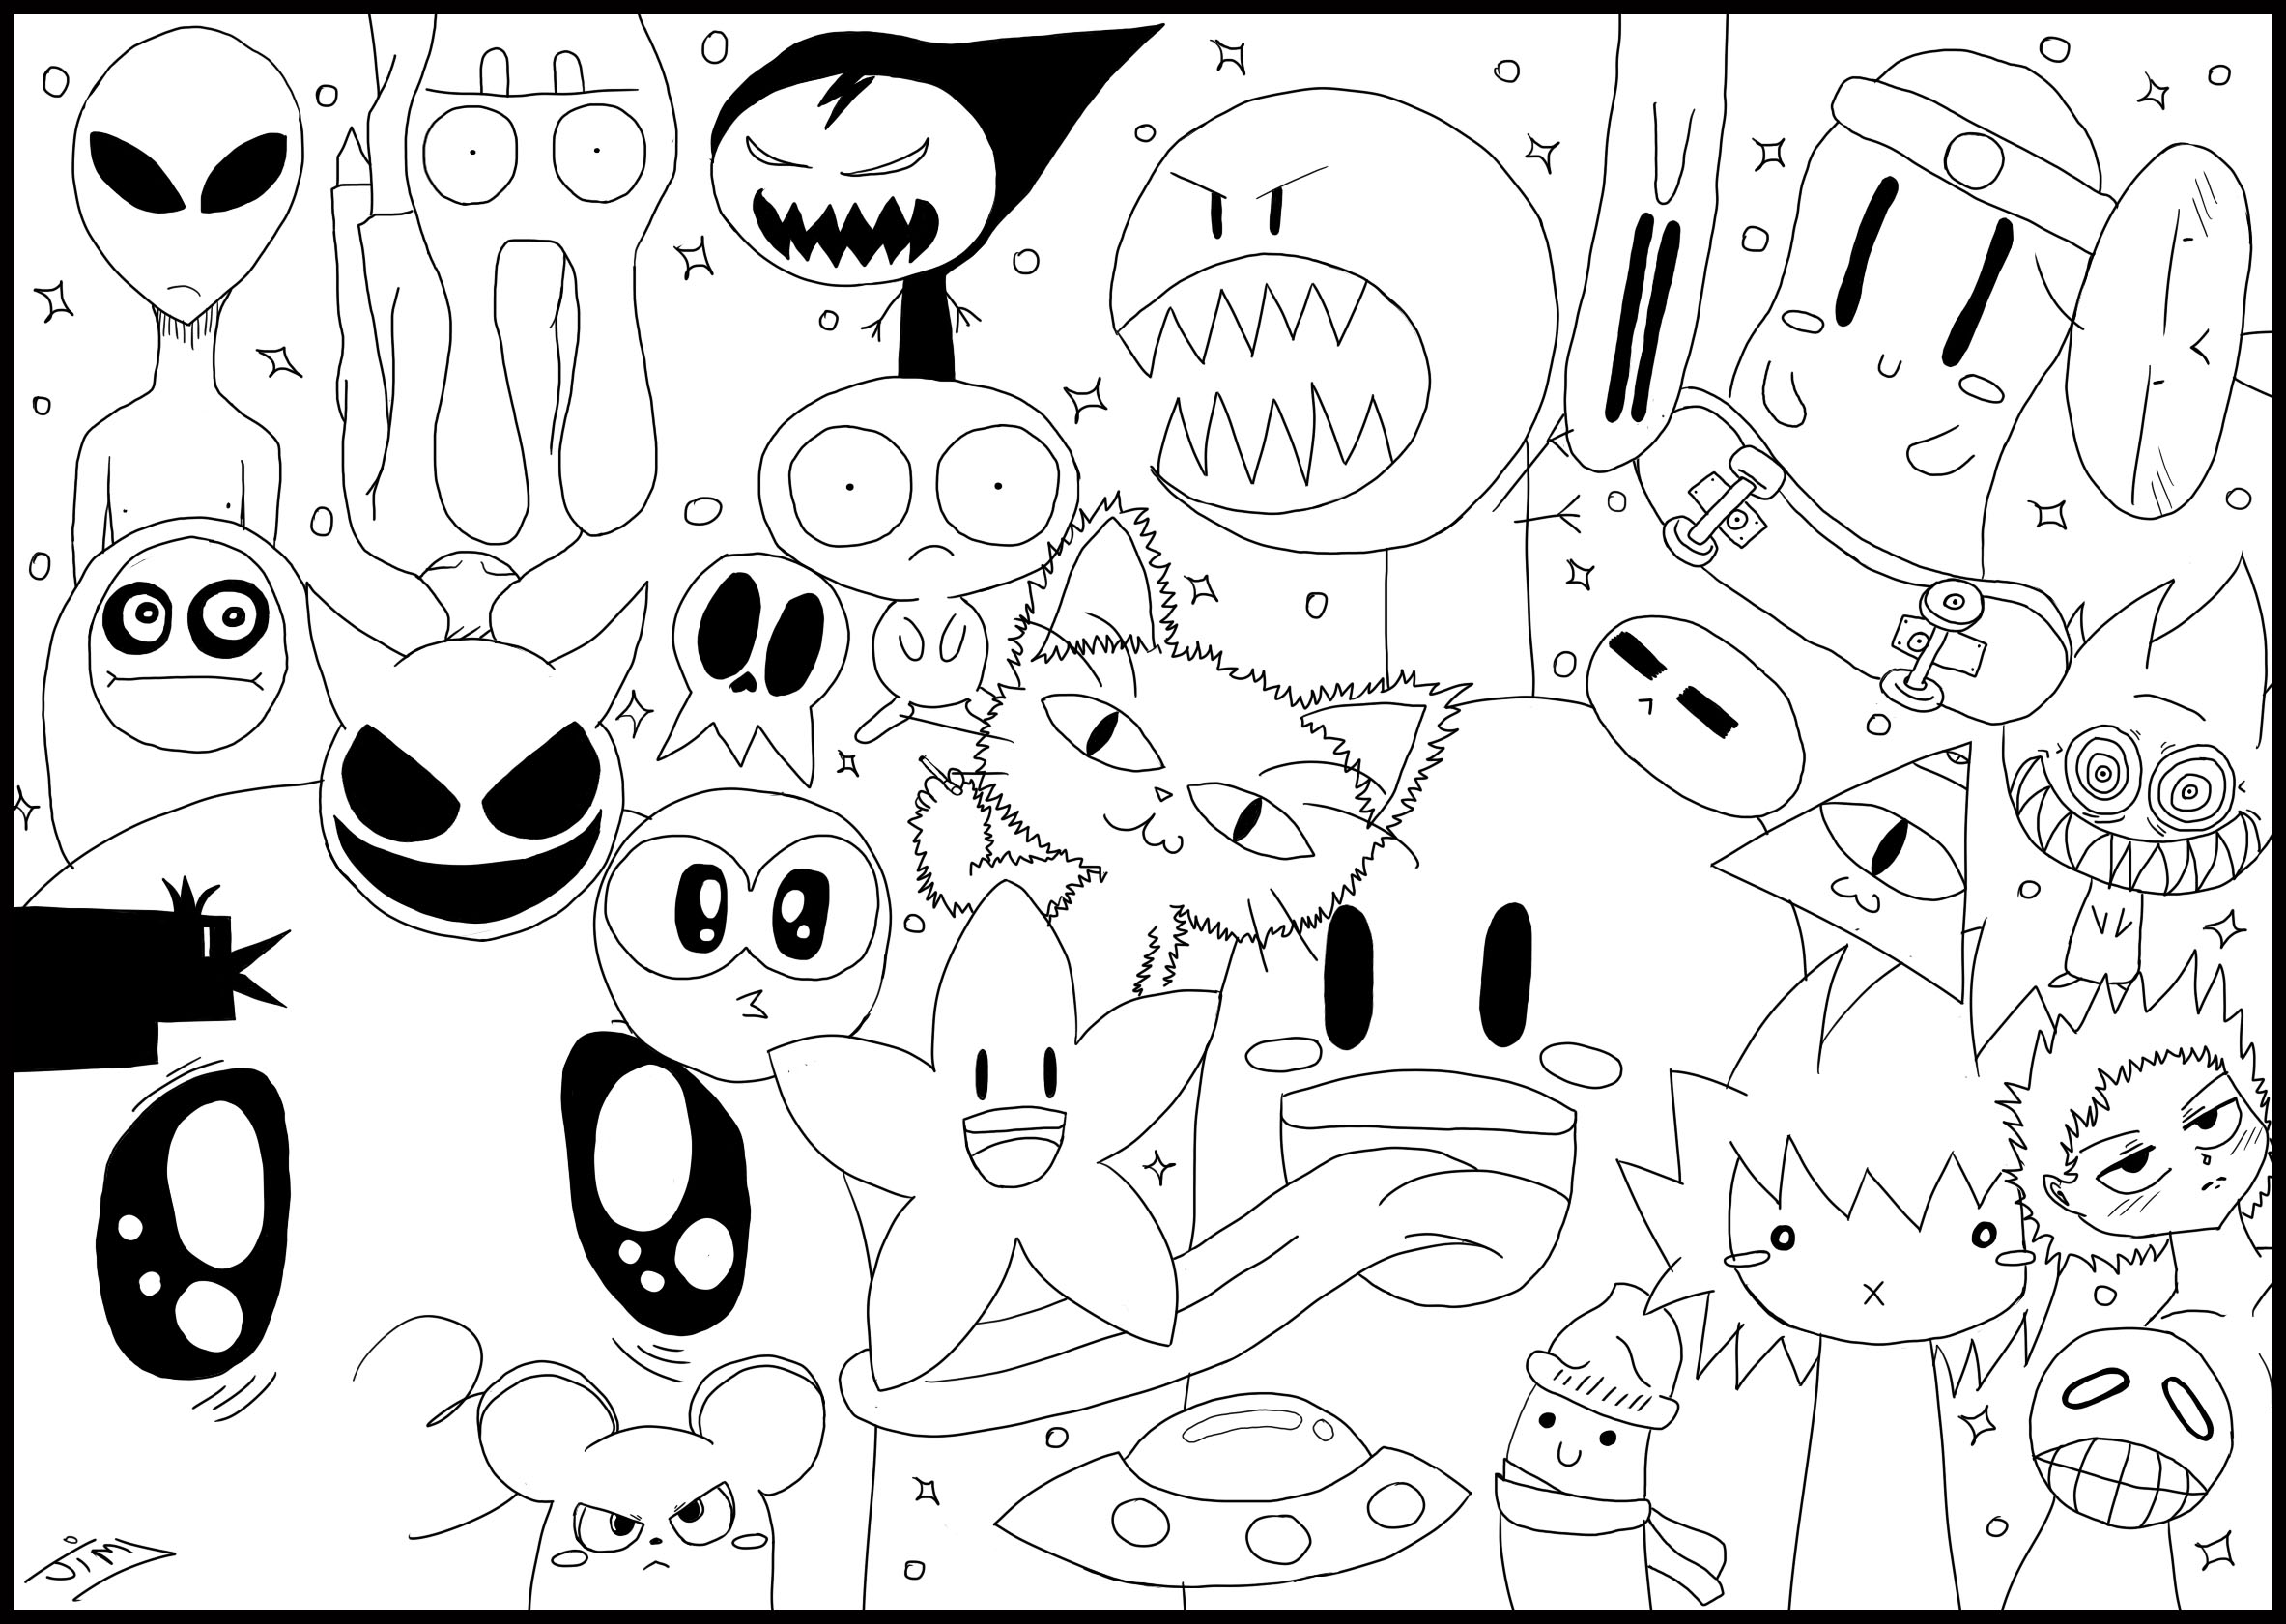 A doodle drawing, with funny kawaii monsters and animals